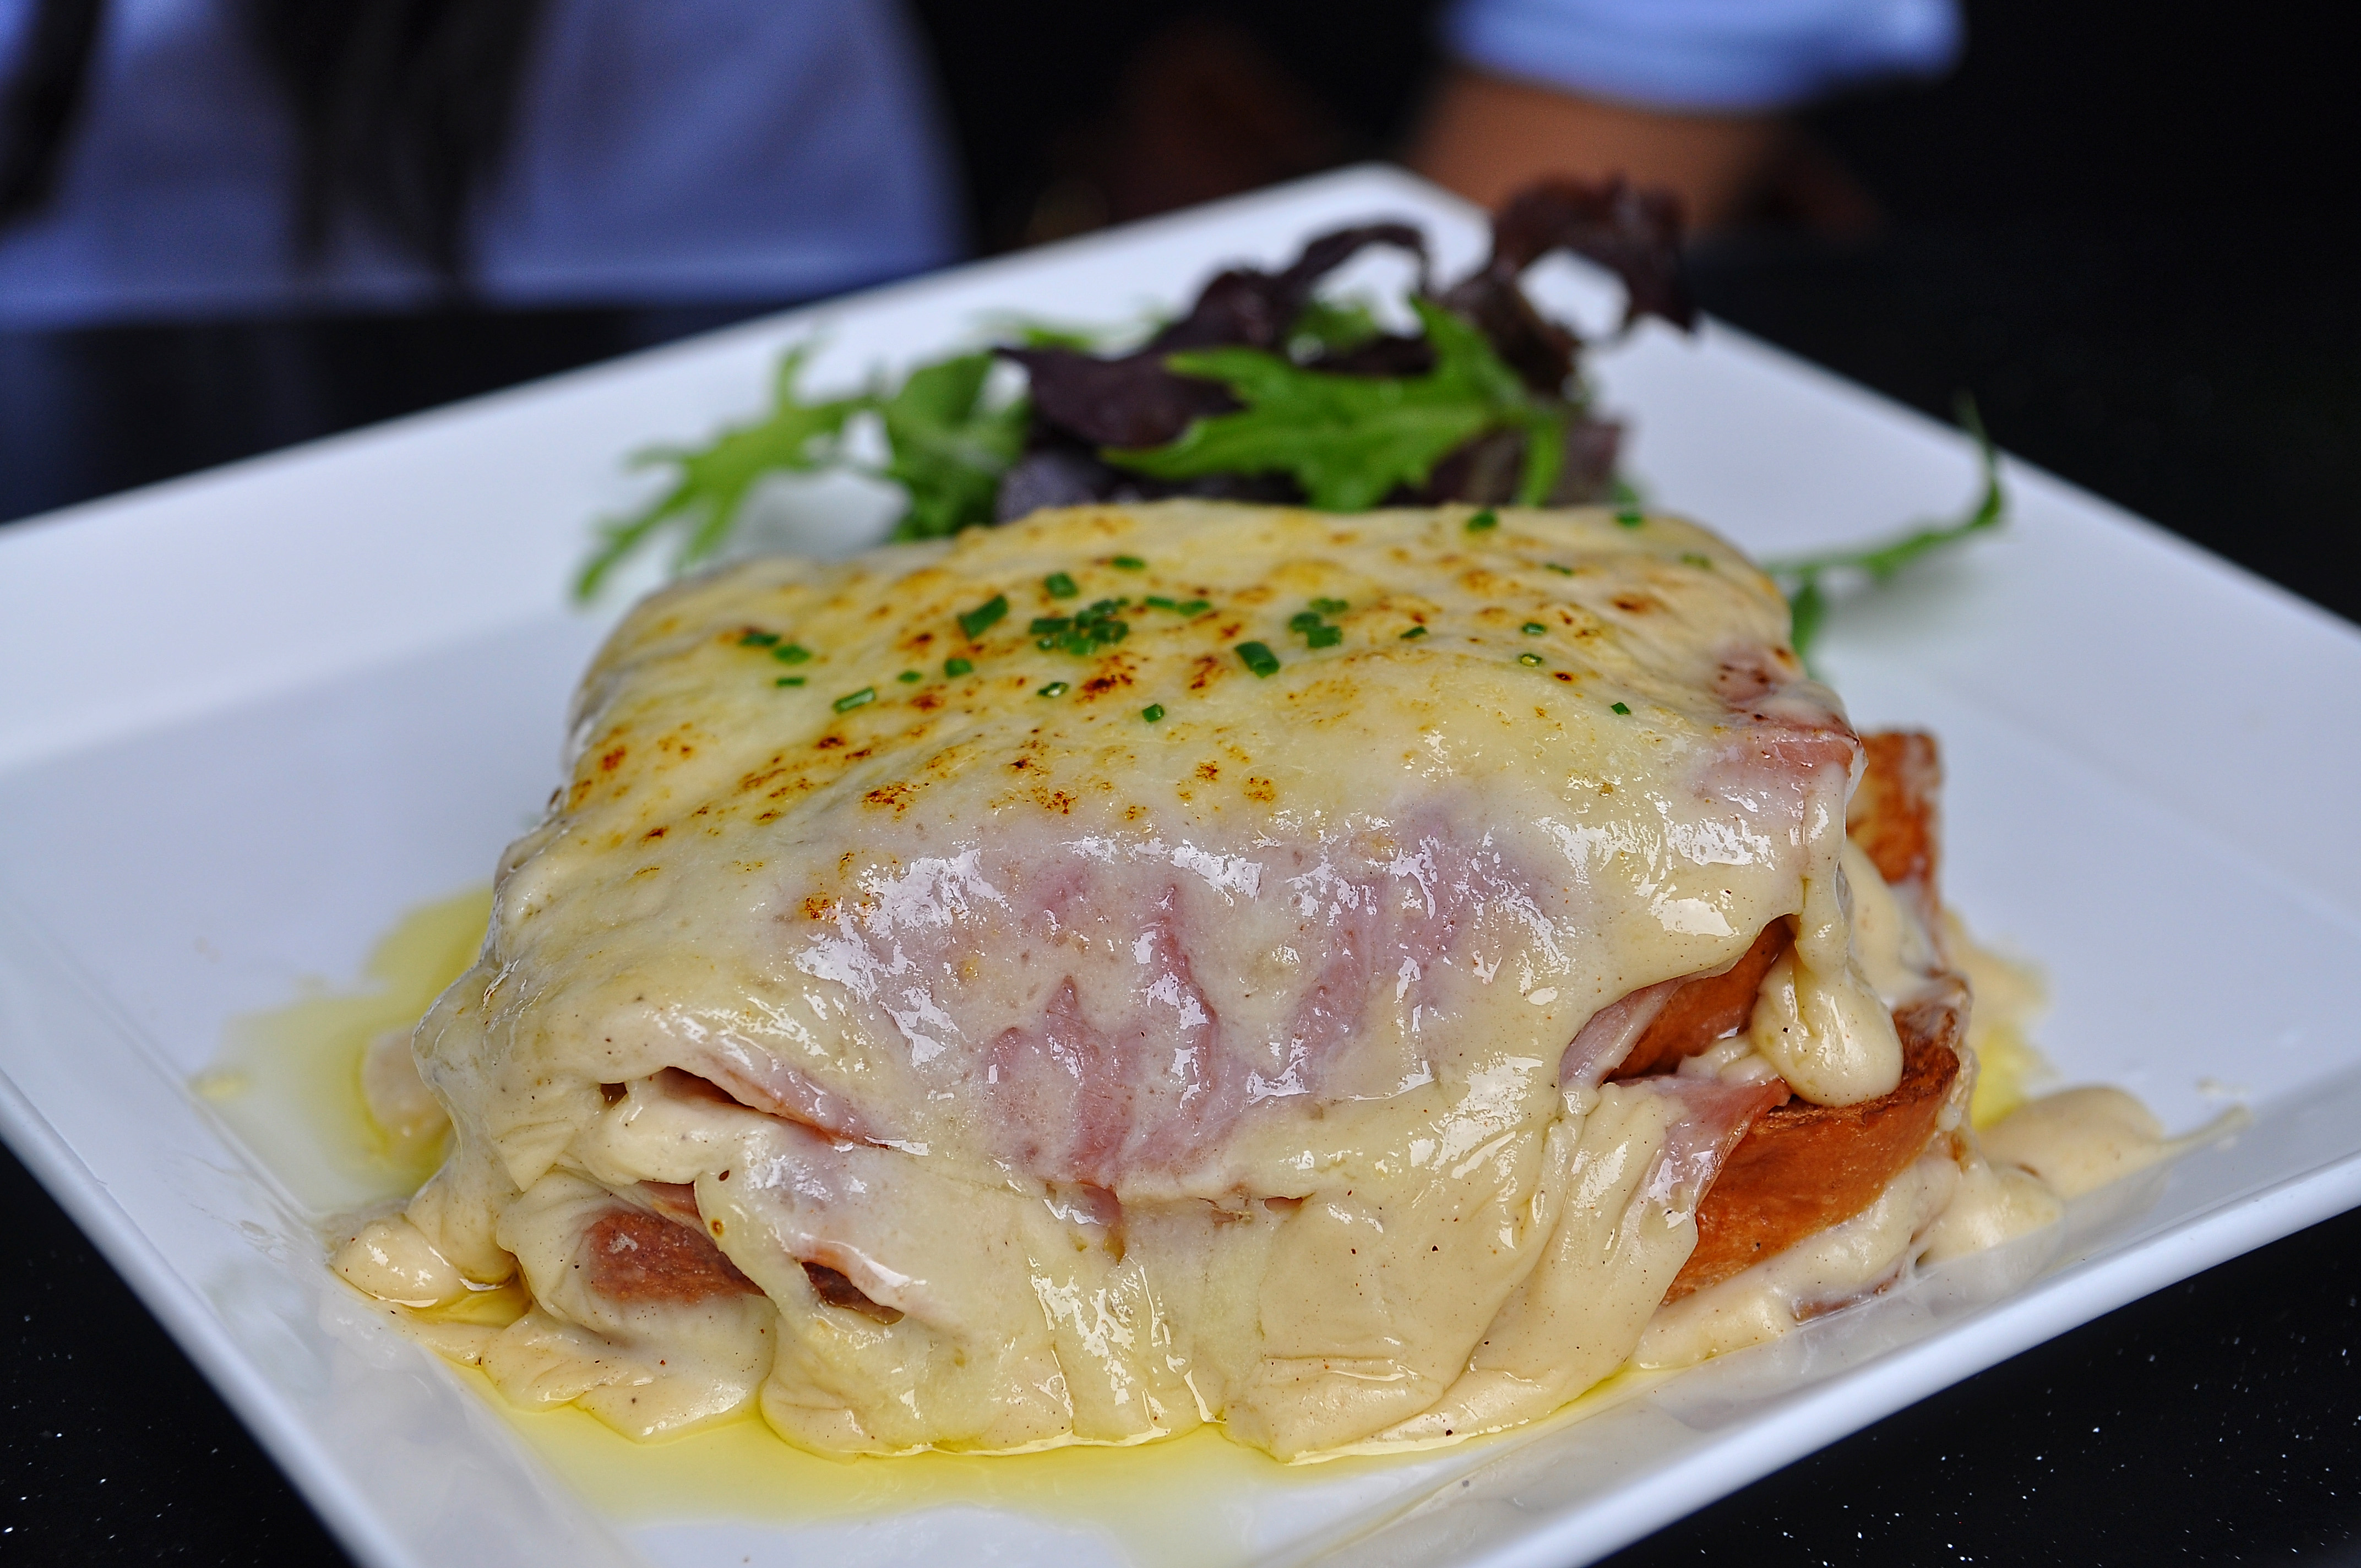 Delicious Destinations Paris - Bread-based with thin layer of ham and covered with melted cheese